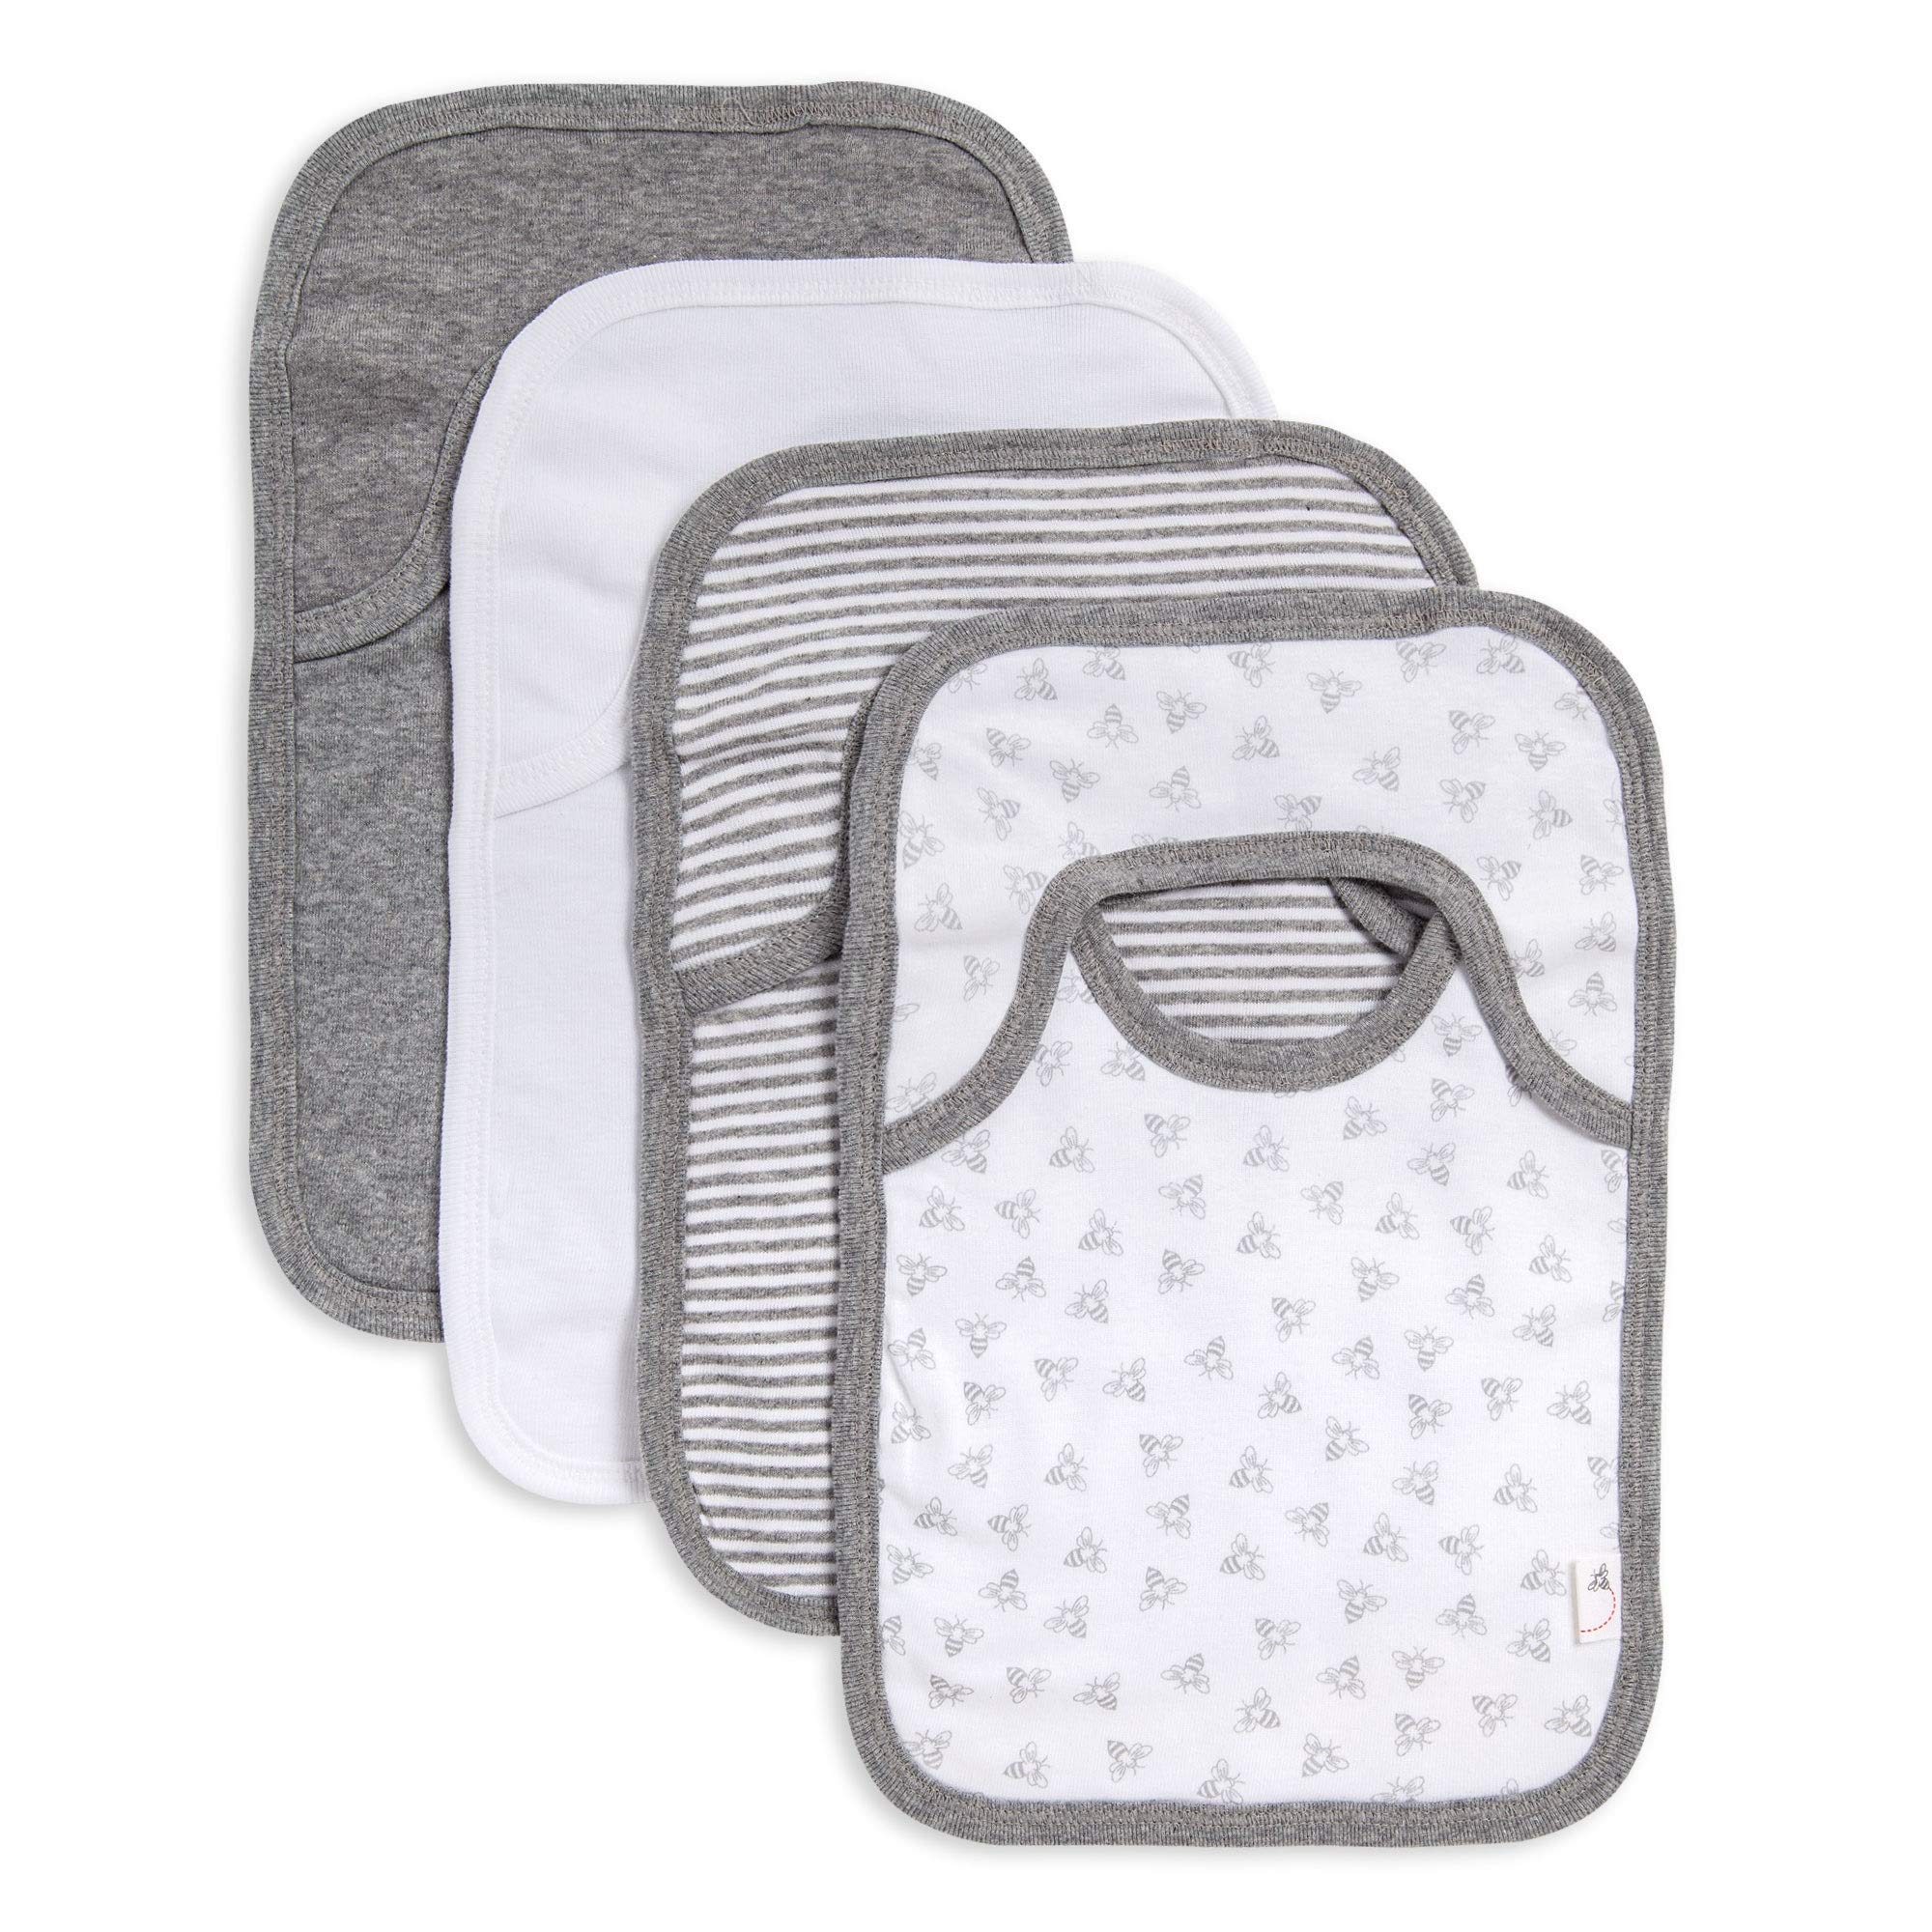 Burt's Bees Baby - Bibs, 4-Pack Lap-Shoulder Drool Cloths, 100% Organic Cotton with Absorbent Terry Towel Backing (Heather Grey) by Burt's Bees Baby